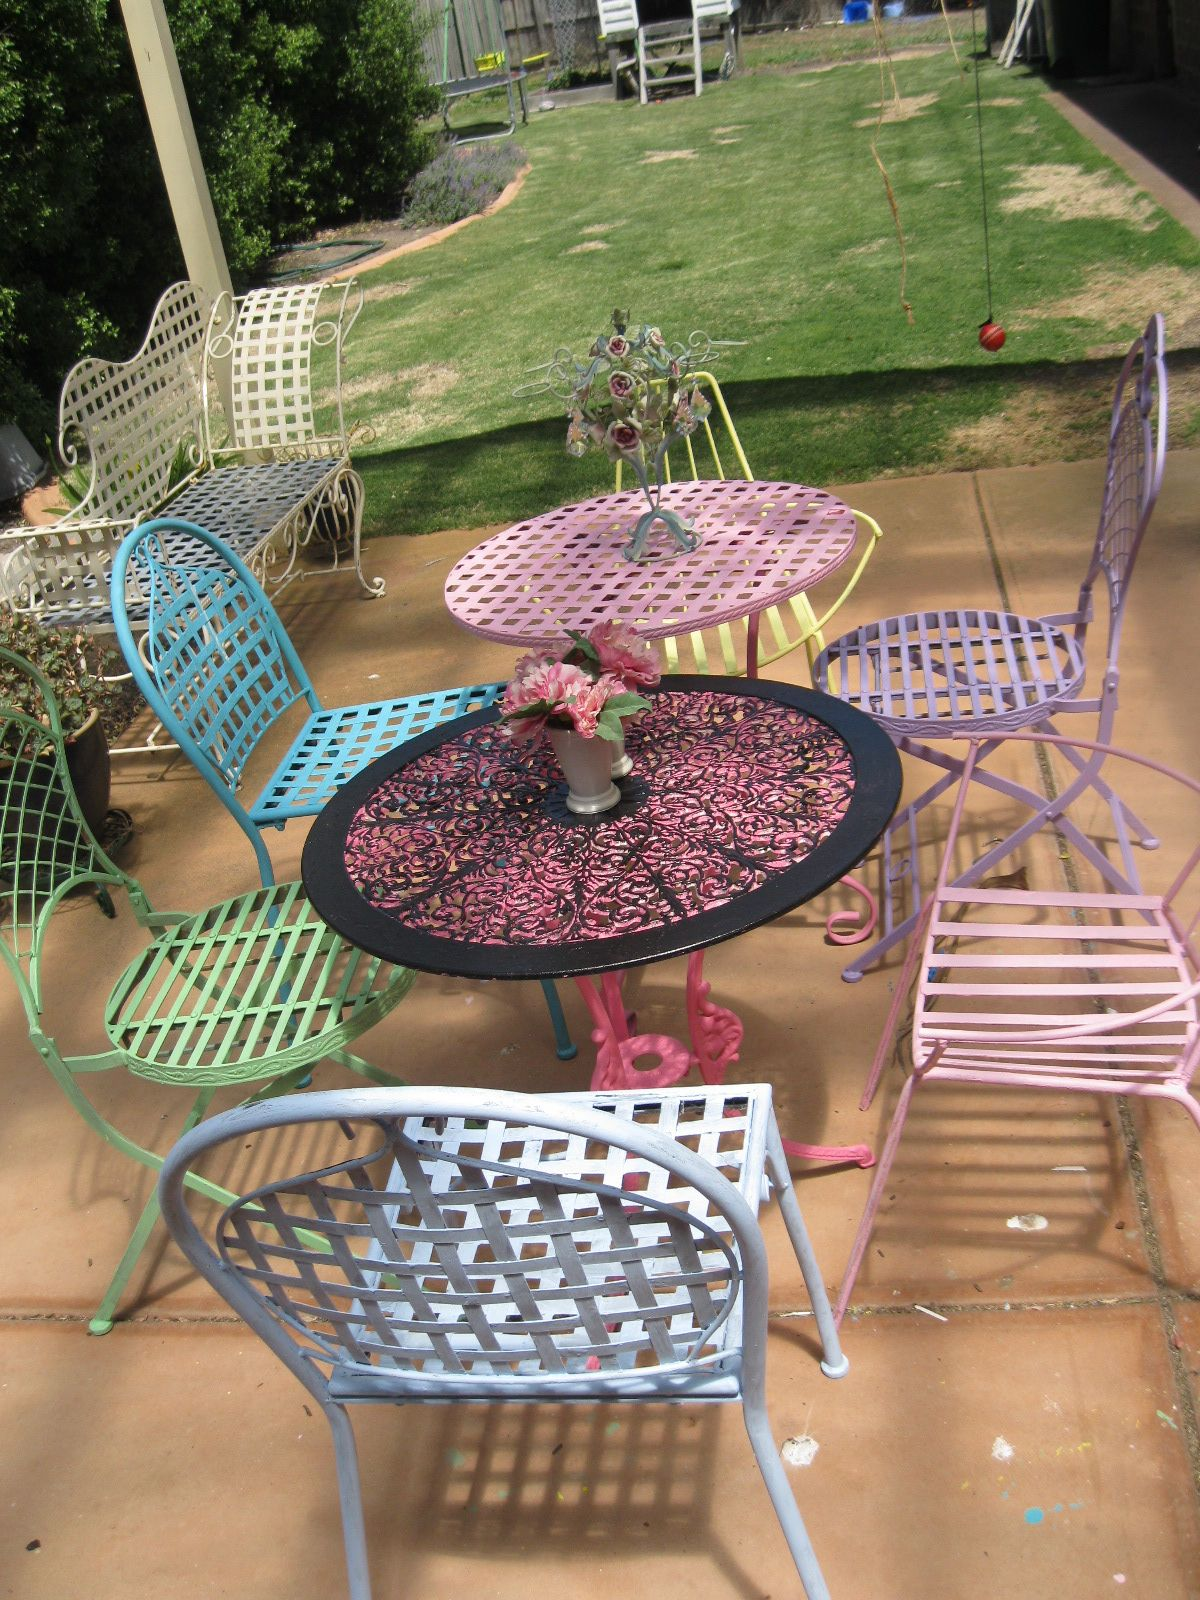 cast iron garden table and chairs on coloured wrought iron furniture wrought iron furniture wrought iron patio furniture iron patio furniture coloured wrought iron furniture